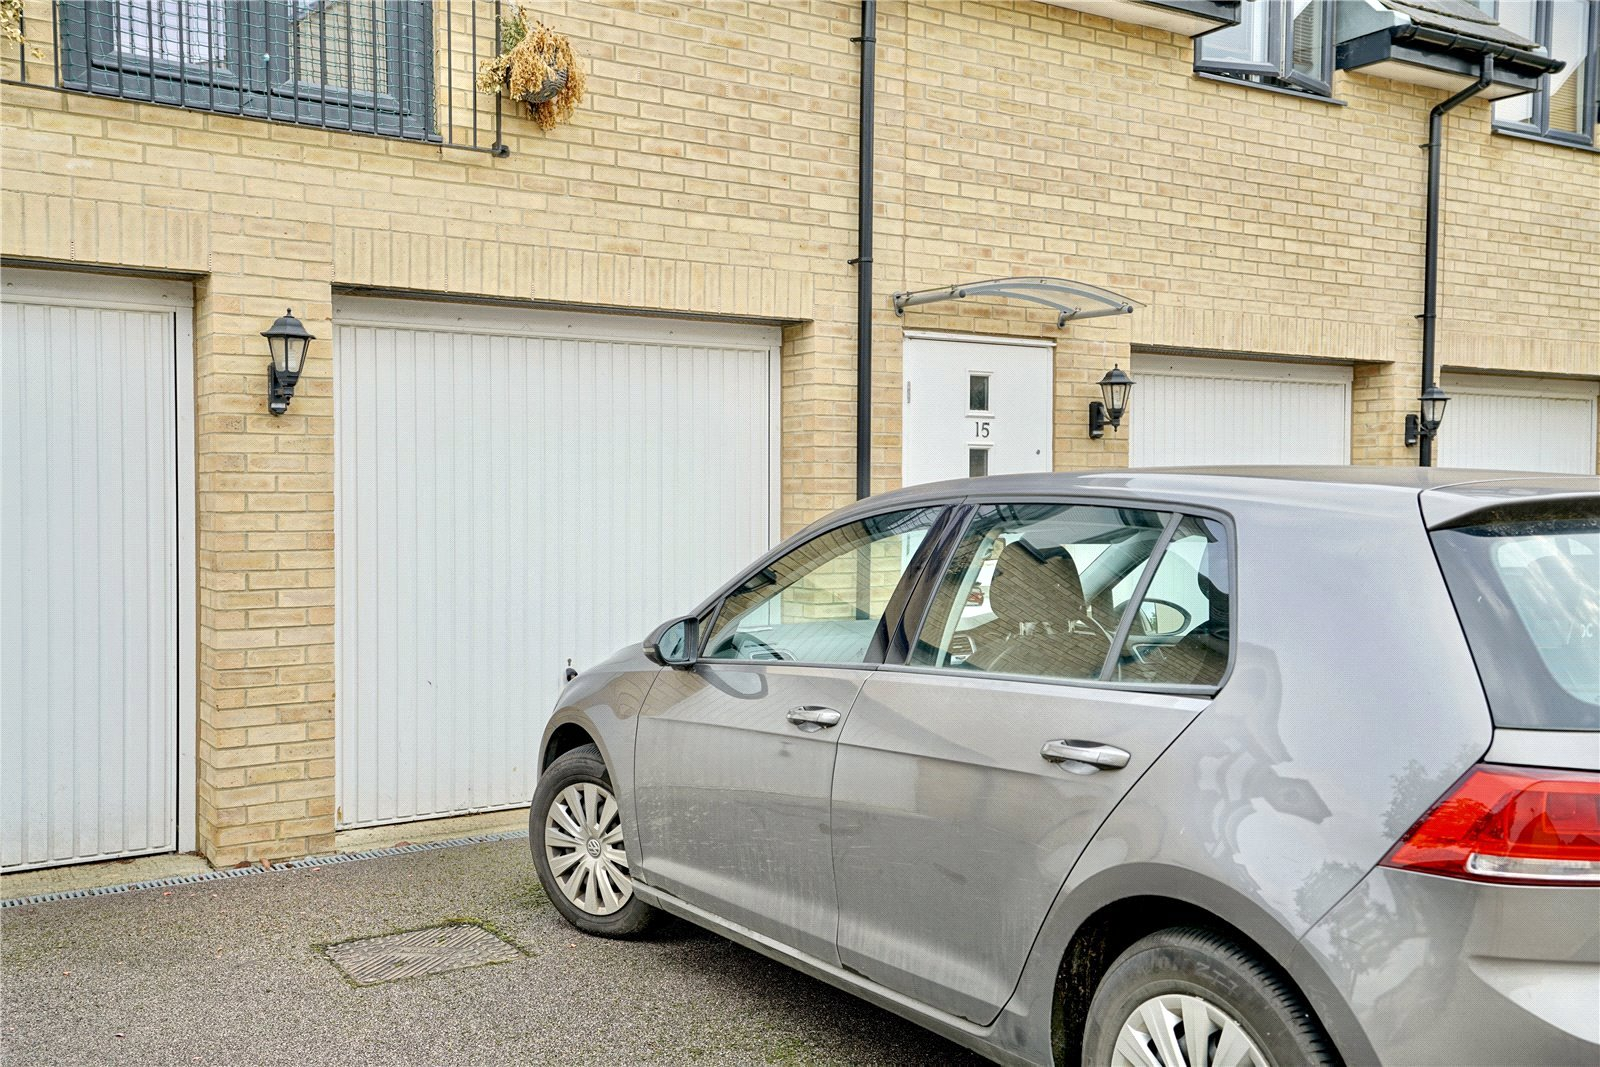 3 bed house for sale in St. Ives, PE27 5DL 15